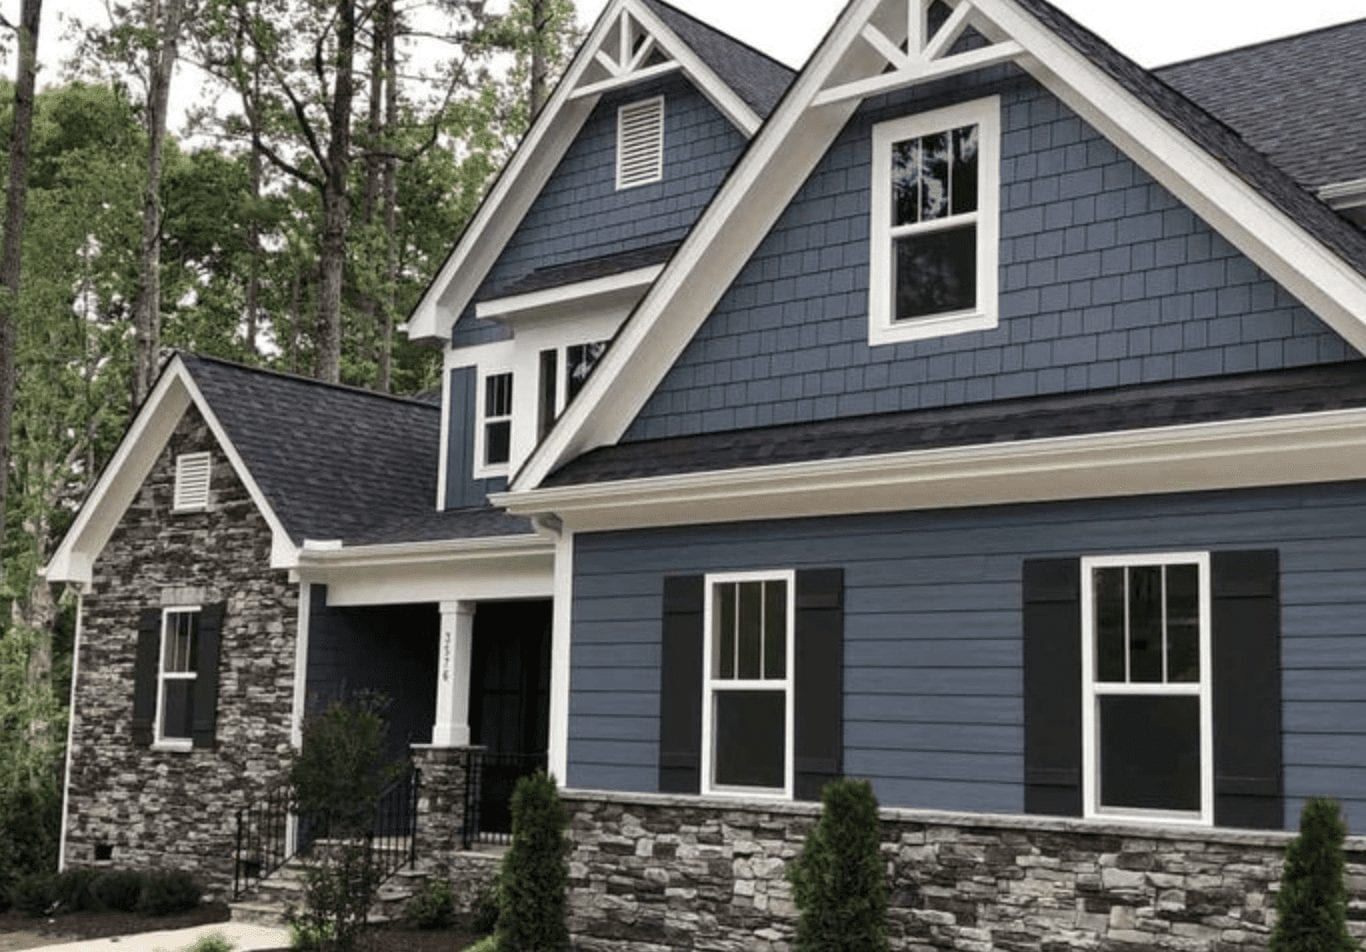 How To Choose The Best Home Exterior Paint Colors – 7 things to consider